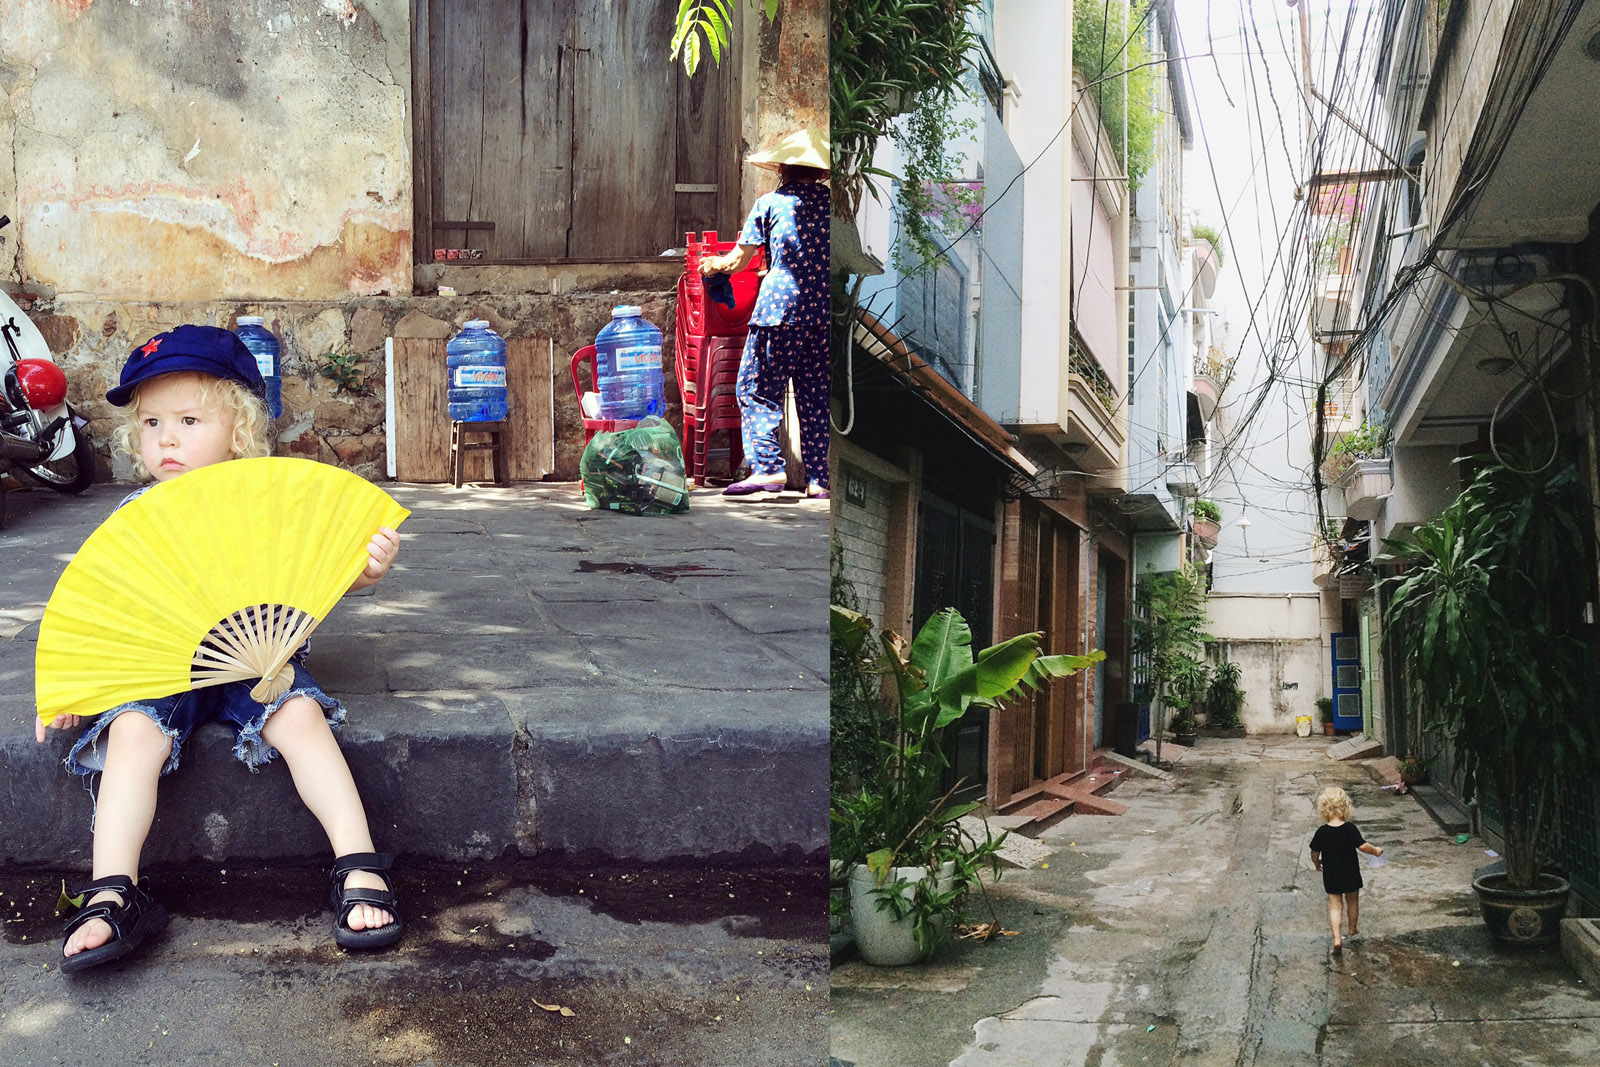 Our blonde-locked youngest, Alby, creating interest for the locals wherever he goes. Here he is in the streets of Hoi An and Ho Chi Minh City, respectively.